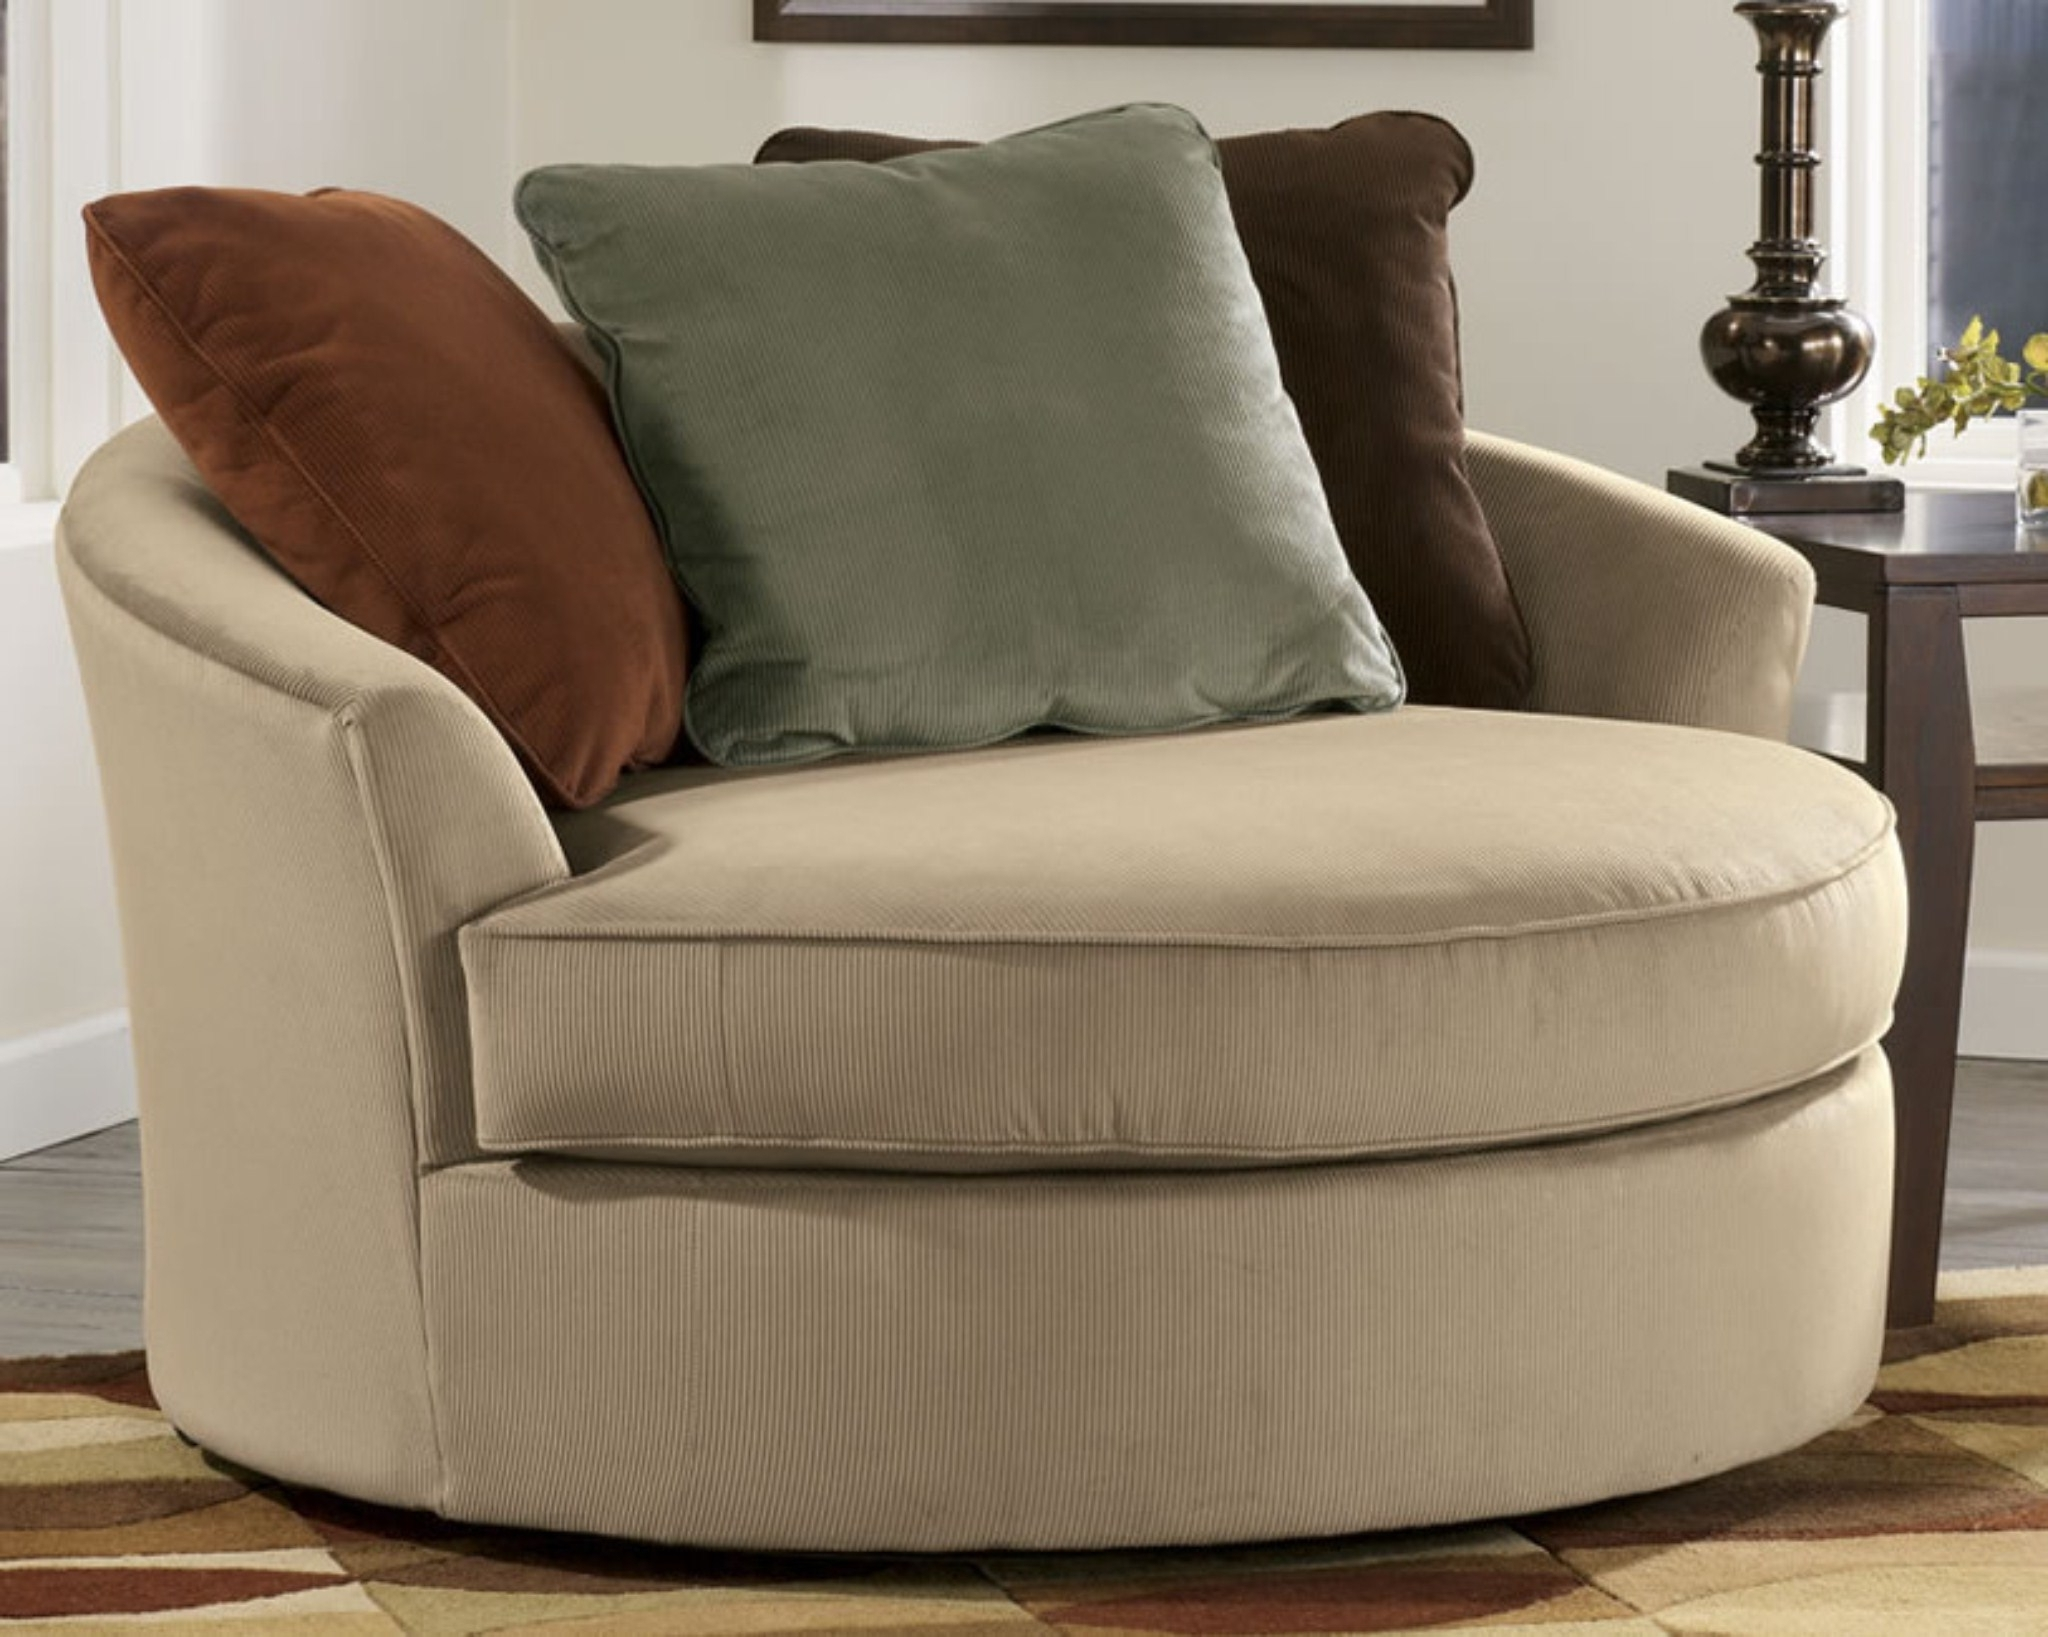 Swivel Sofa Chairs In Current Large Swivel Lounge Chair • Lounge Chairs Ideas (View 9 of 15)